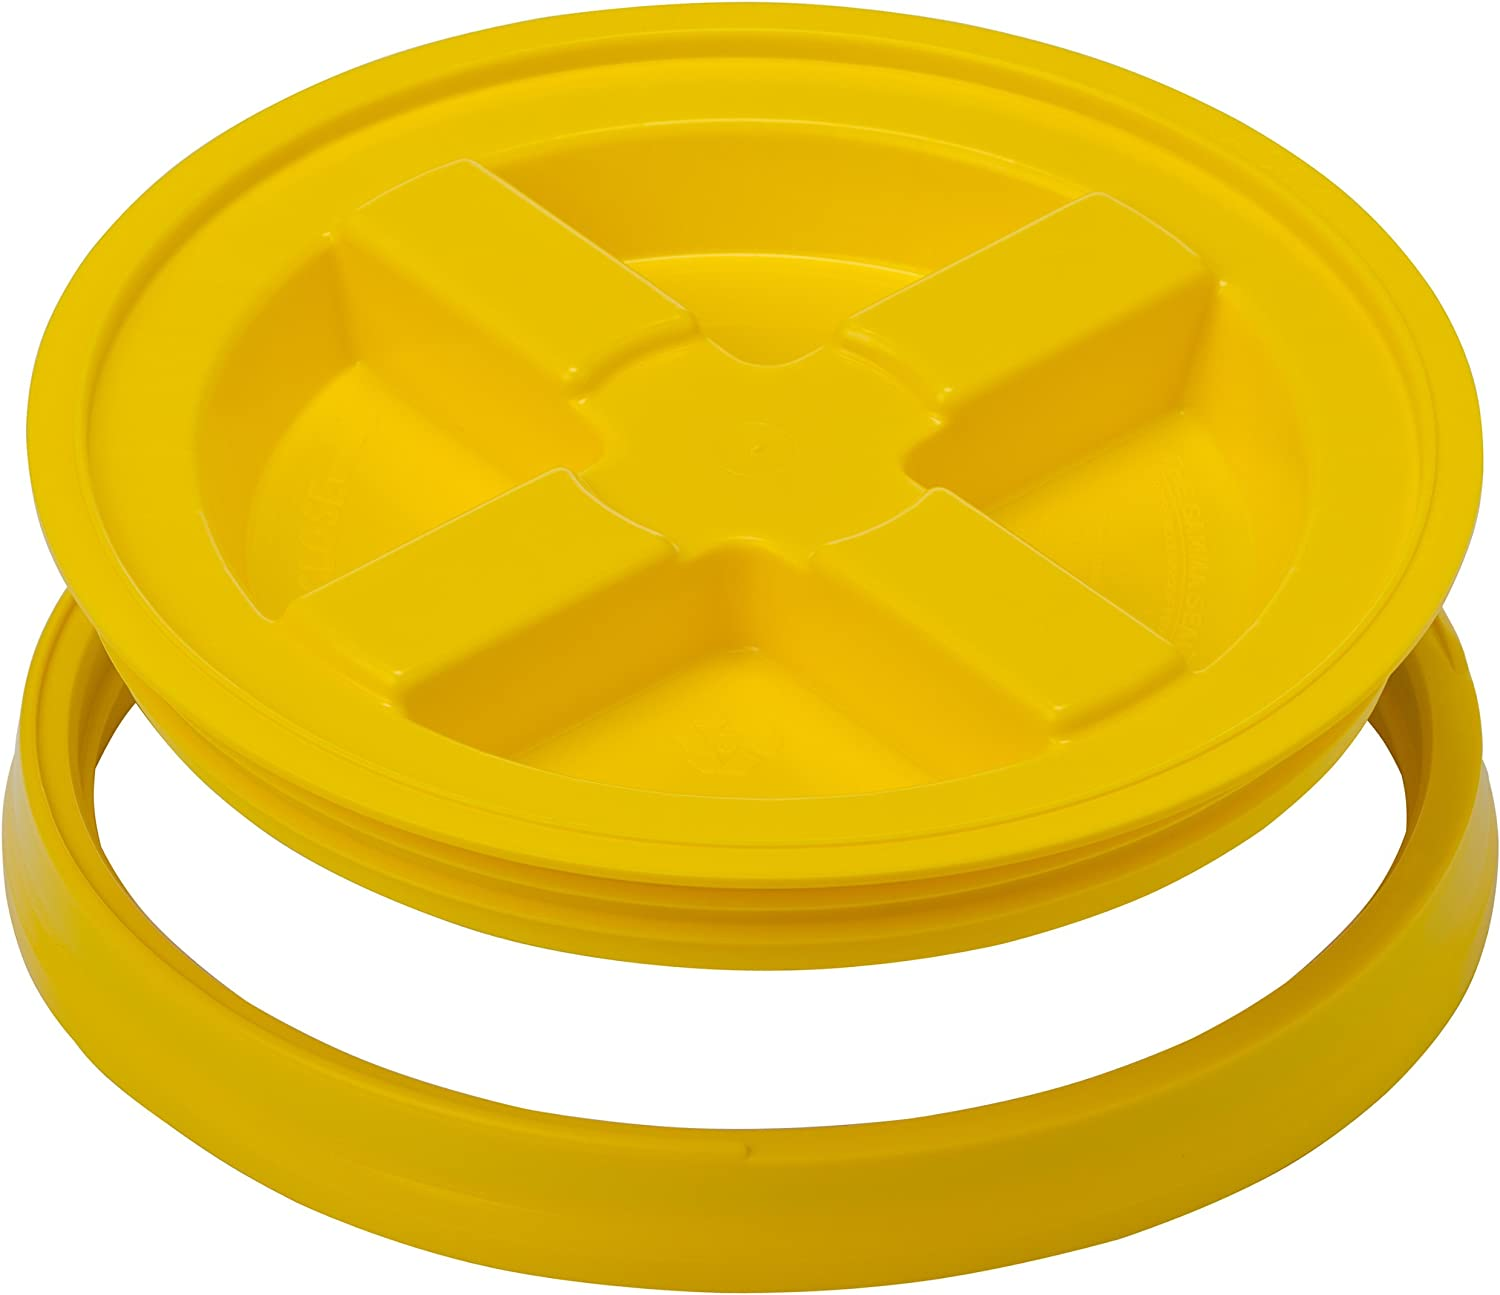 Gamma Seals Airtight & Leakproof Lid for 3.5 to 7 Gallon Buckets, Yellow (4121)